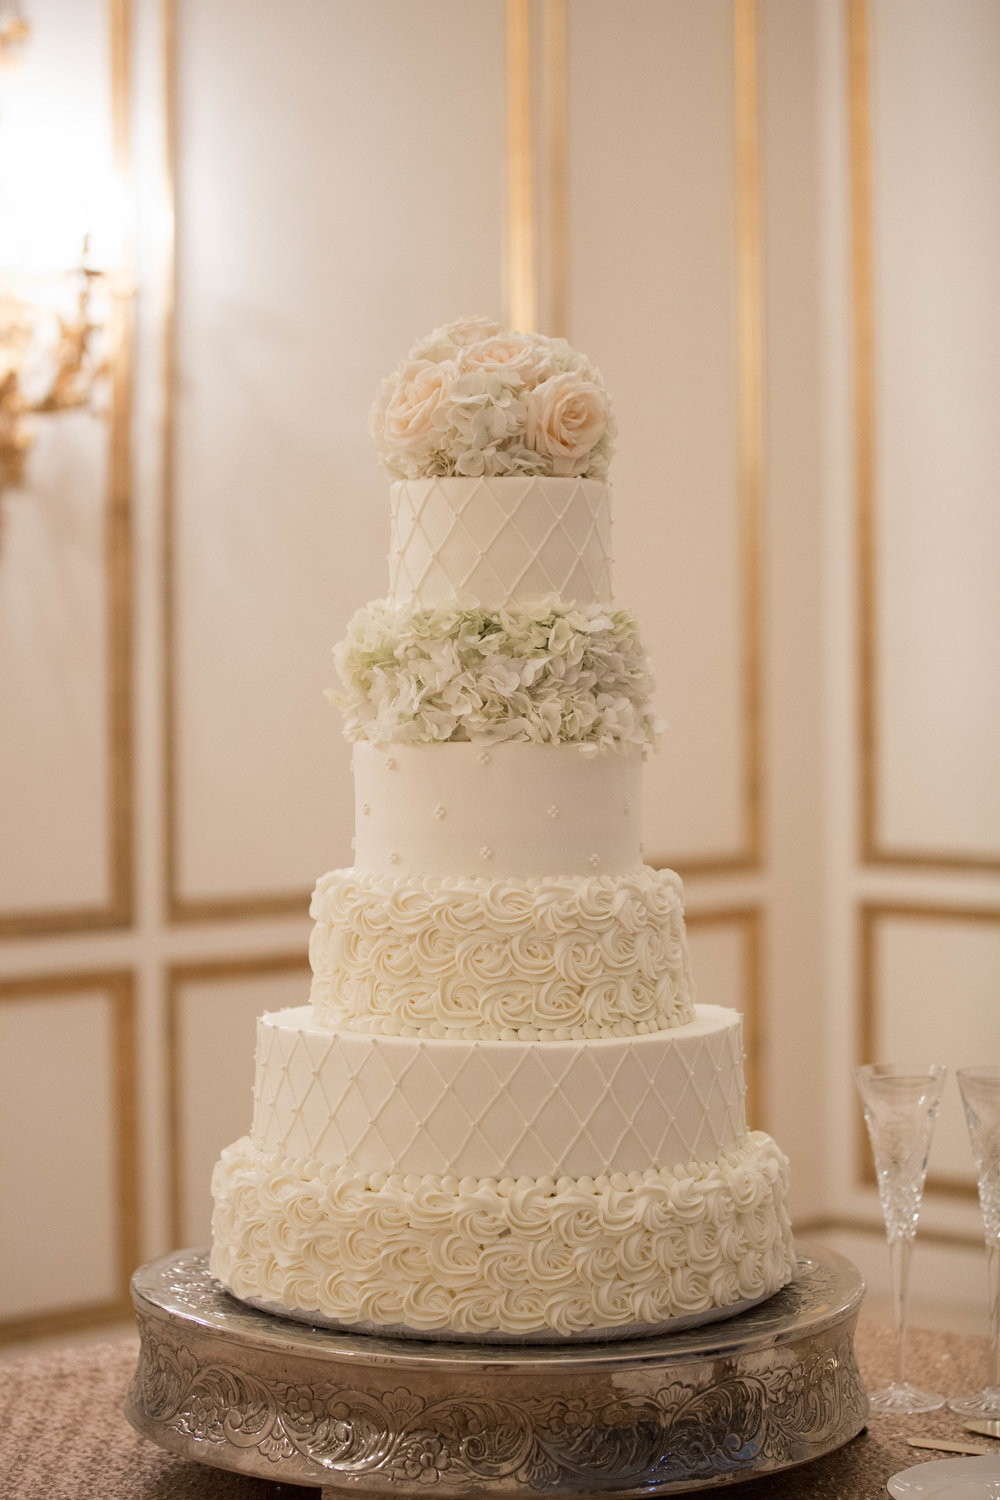 Wedding Cake | by Vashti Co.